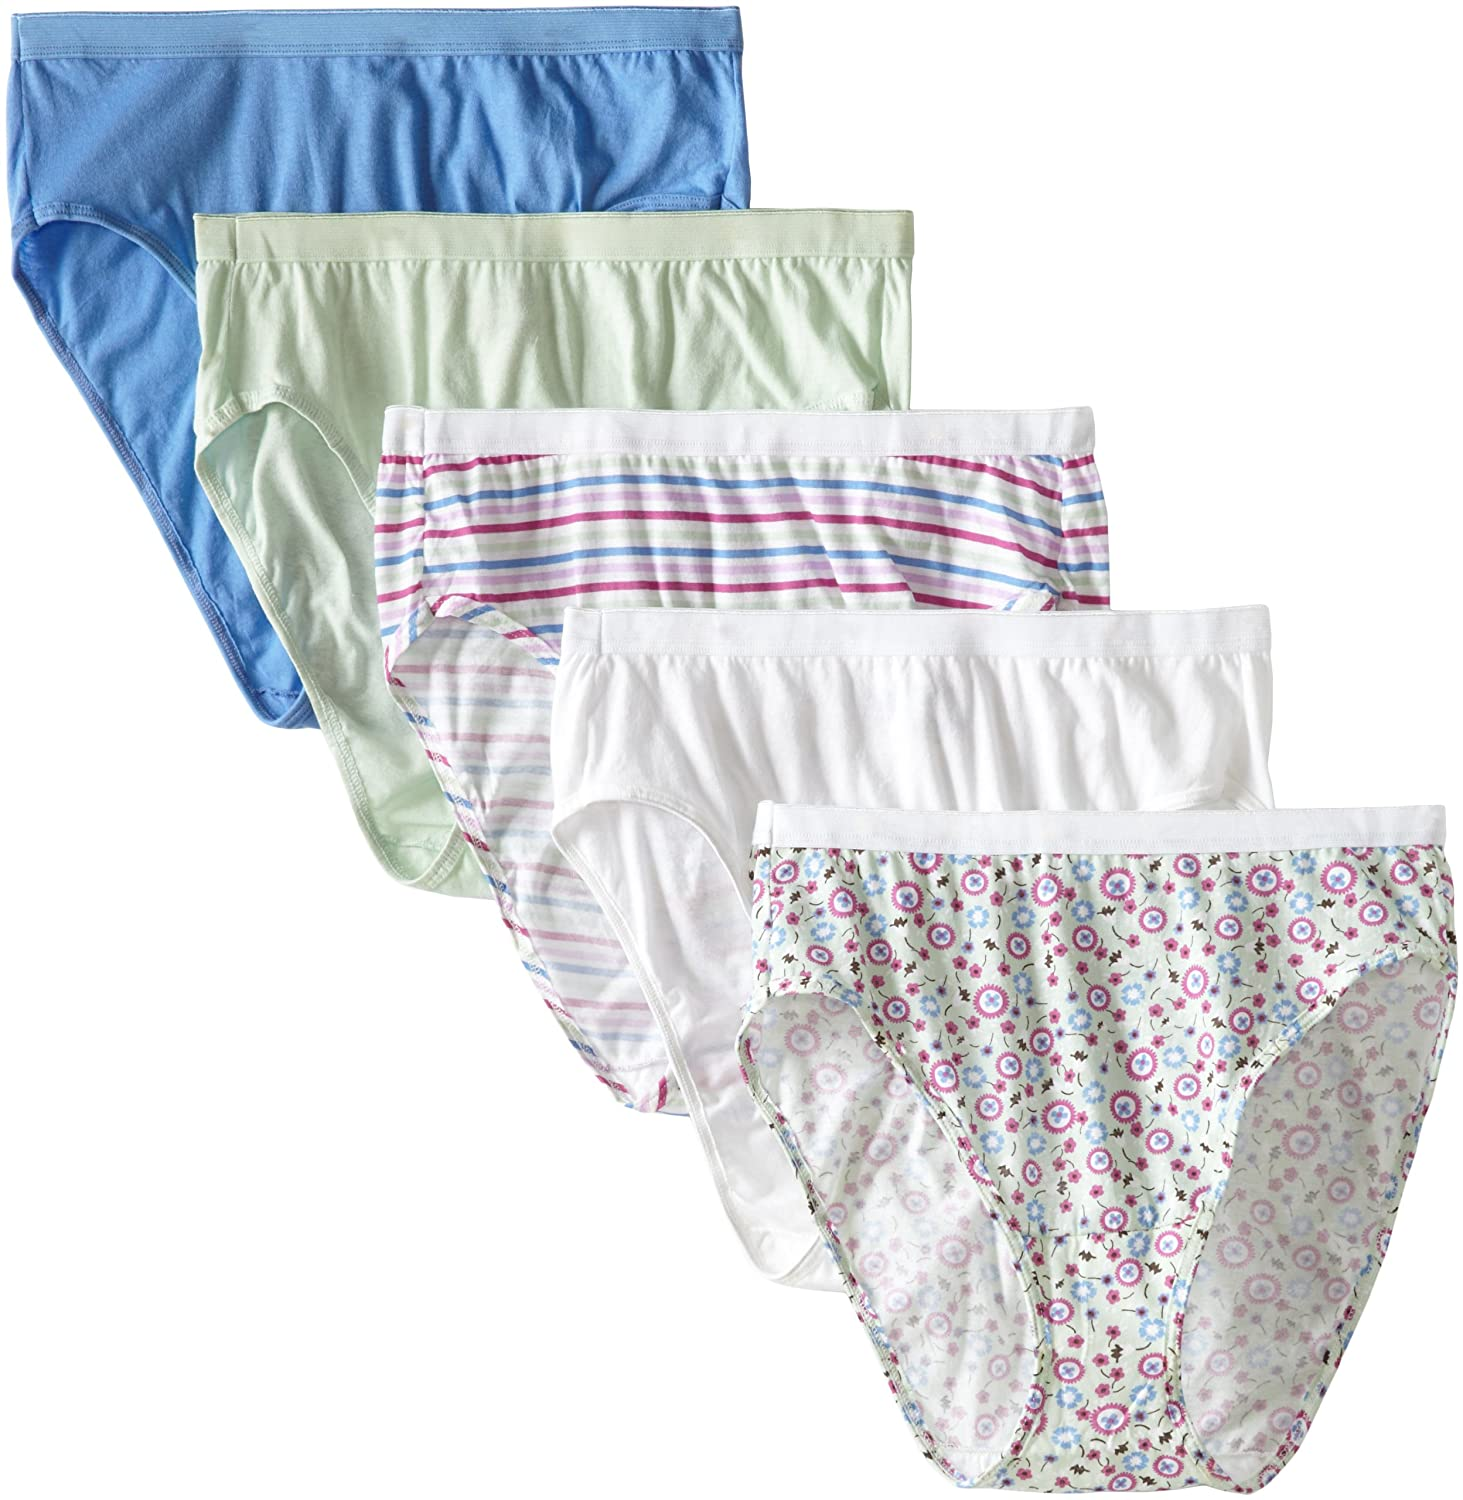 8f8c864e6dd Fruit of the Loom Womens 5 Pack Fit for Me Cotton Hi Cut Brief at Amazon  Women's Clothing store: Briefs Underwear